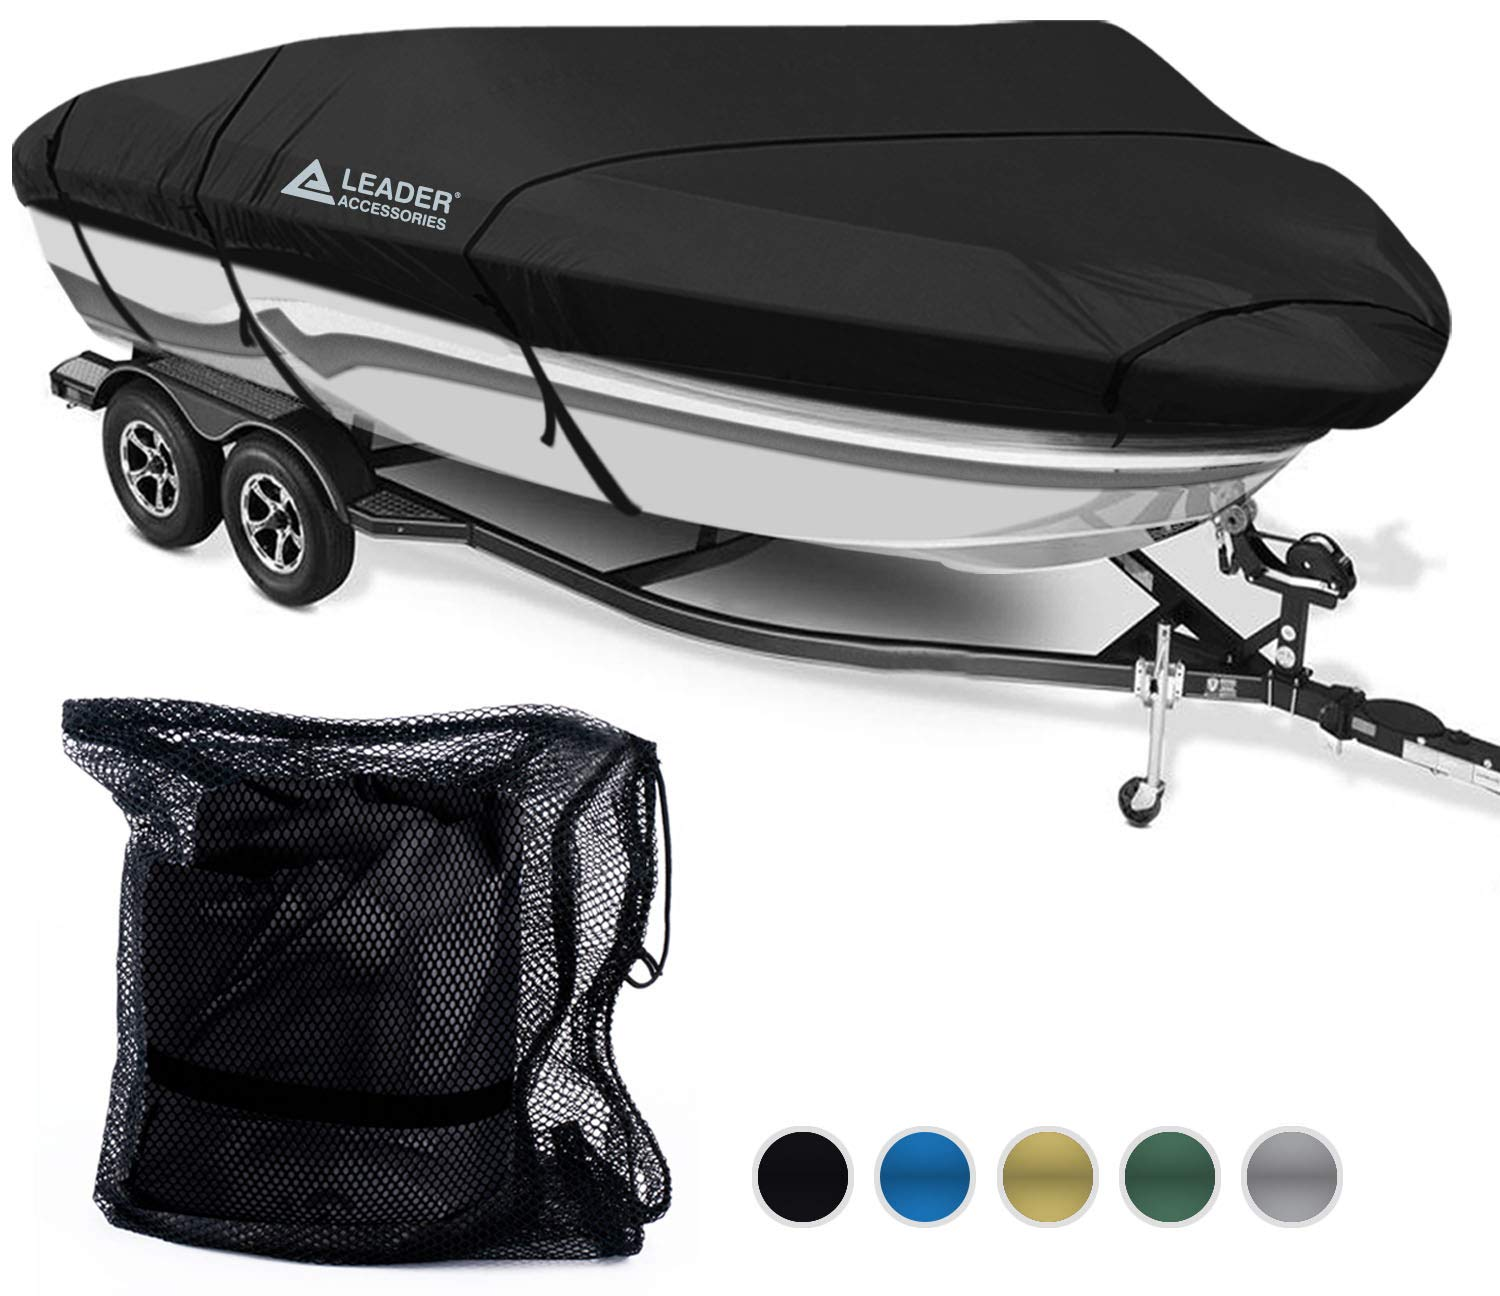 Leader-Accessories-600D-Boat-Cover